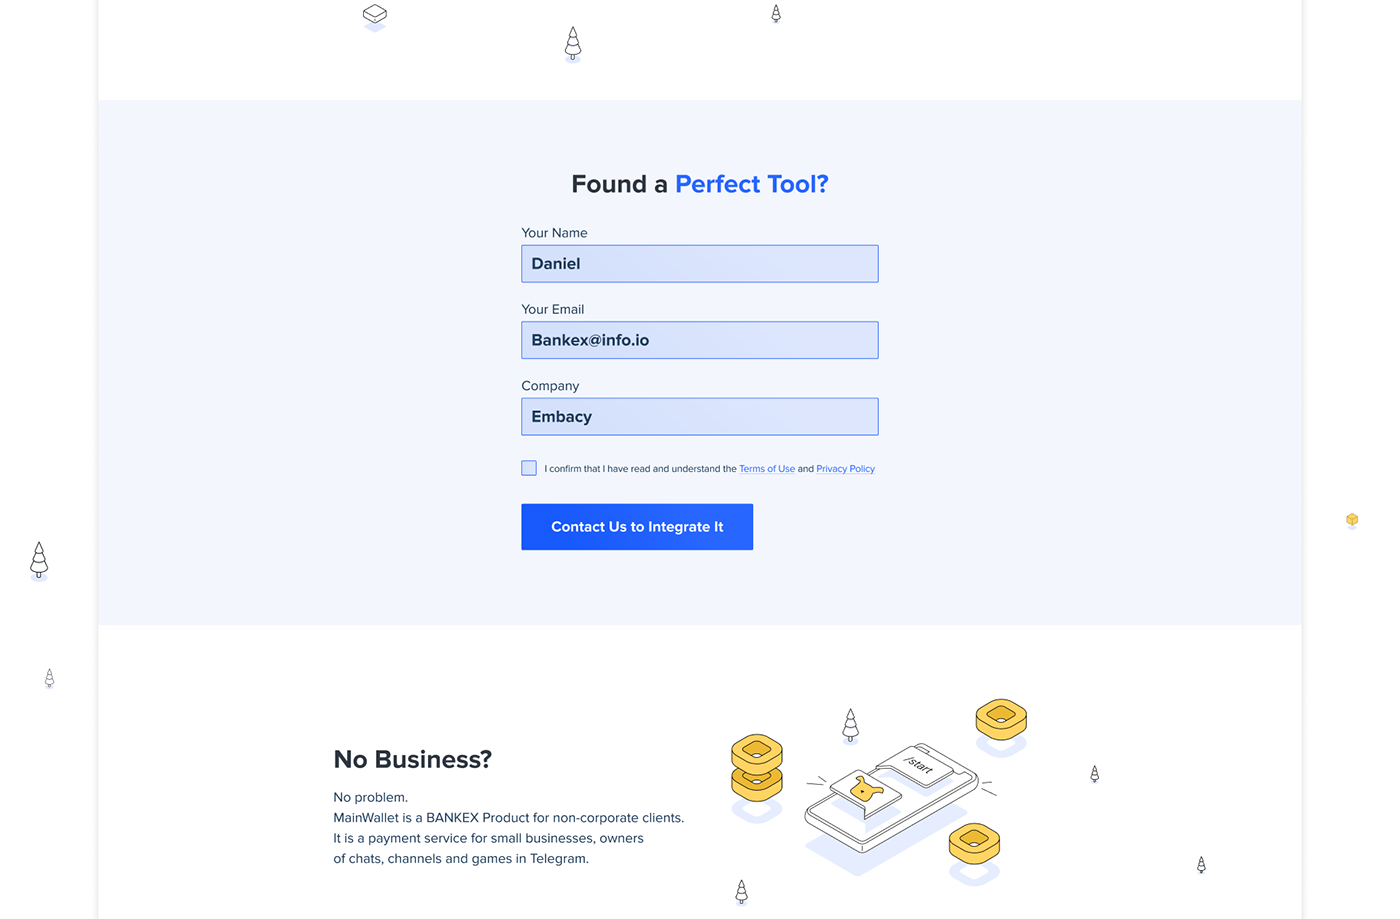 Startup embacy clean crypto cryptocurrency IT ILLUSTRATION  illustrations Website landing page